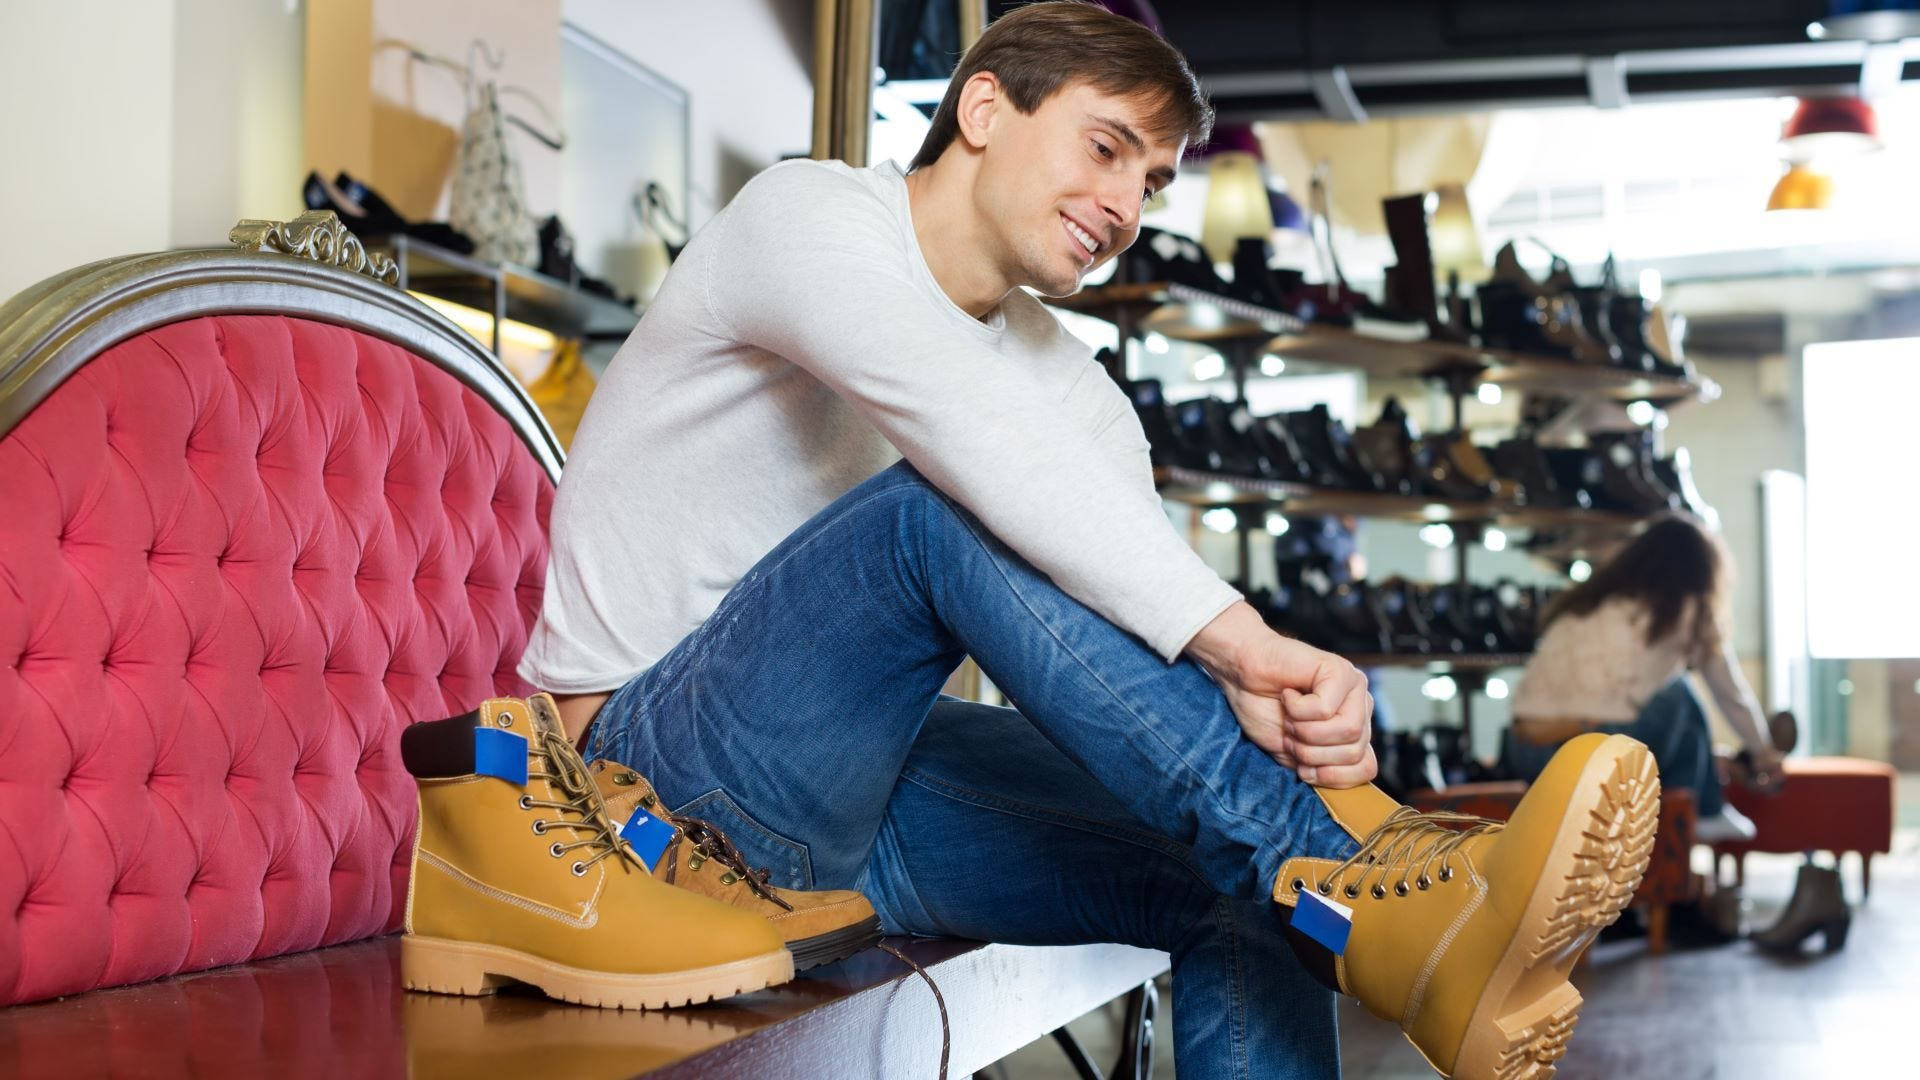 A man trying on hiking boots at a shoe store.